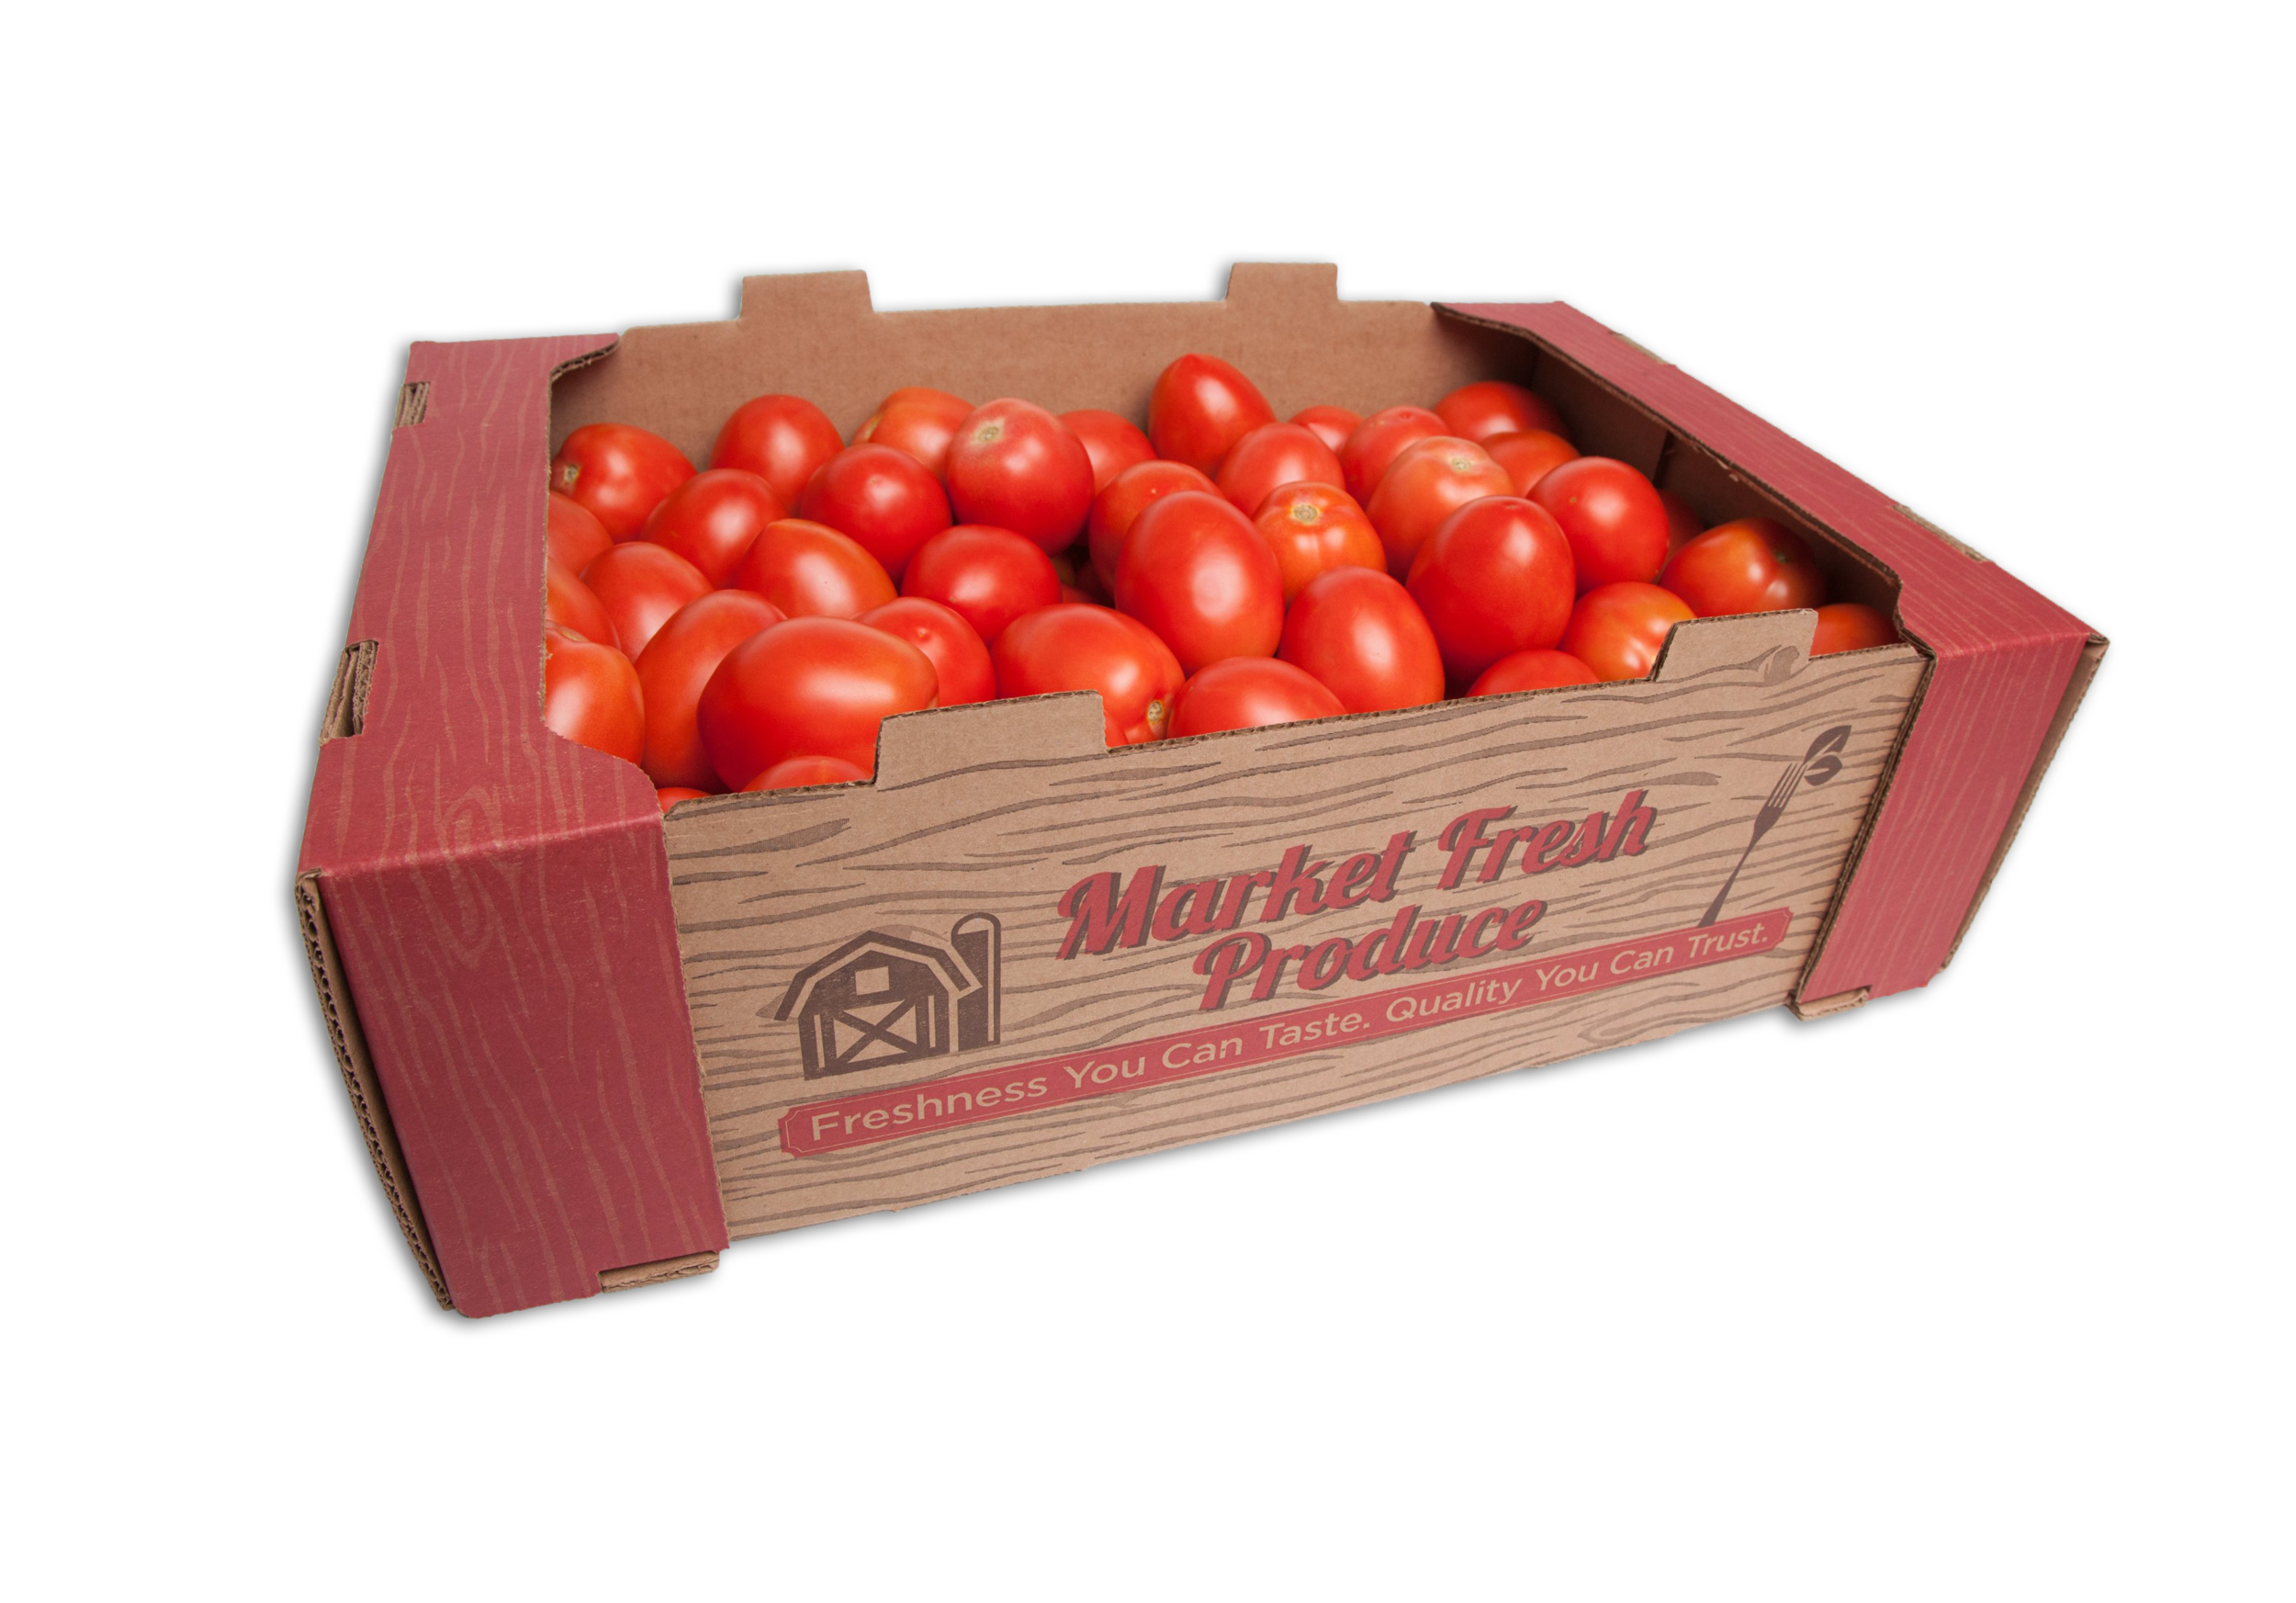 Roma Tomatoes - We can provide you and your consumer with only the best and this means Roma tomatoes. Our Roma tomatoes come in 25 pound cases in various sizes: Medium, Large #1, and XL or packaged Romas that are retail ready. We always have a year around supply!